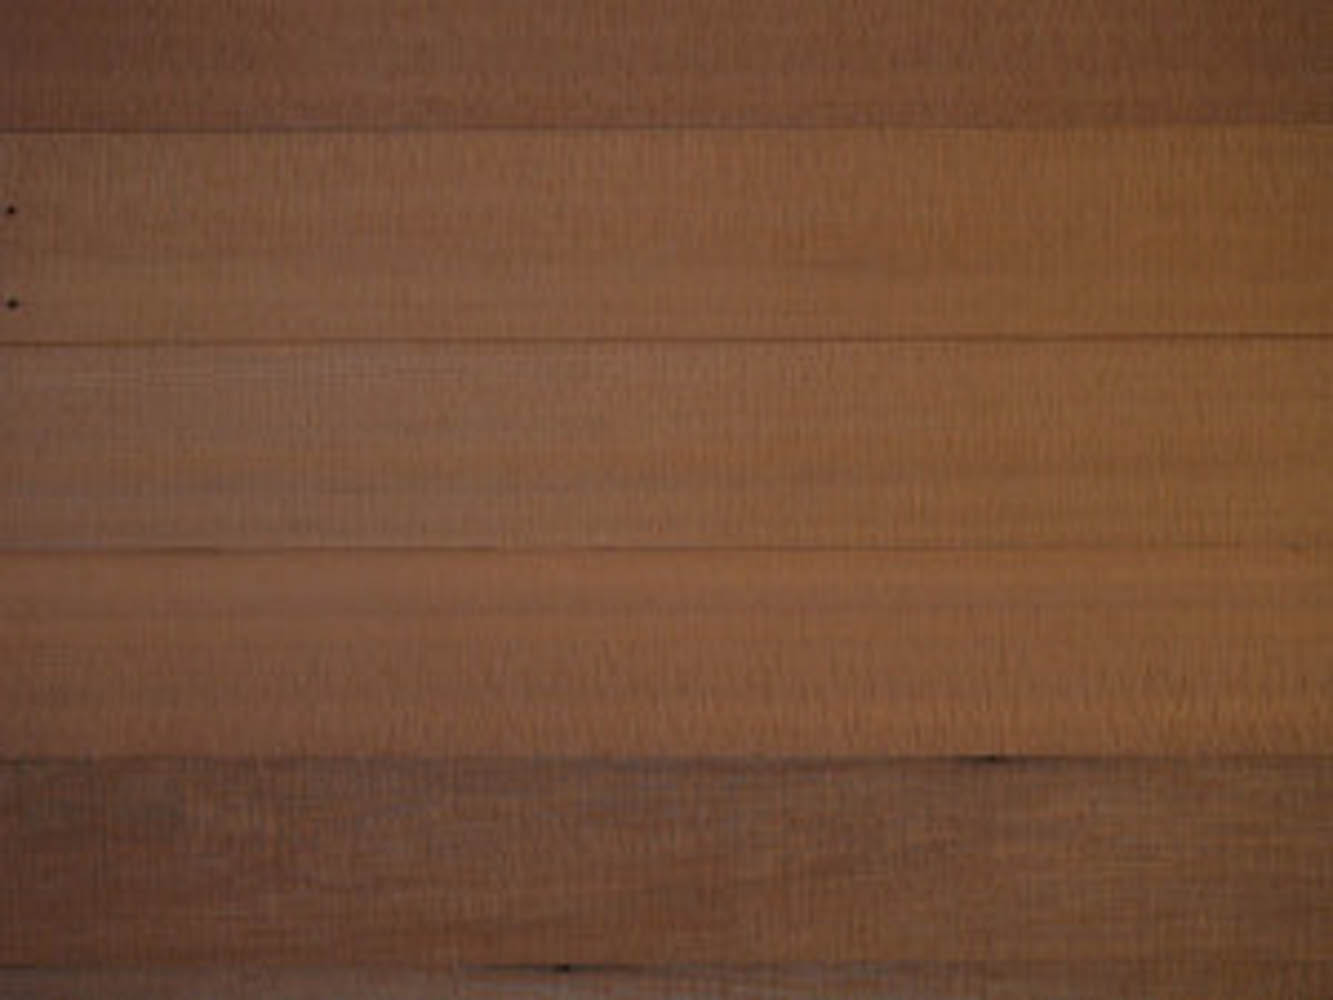 Sawn Redwood